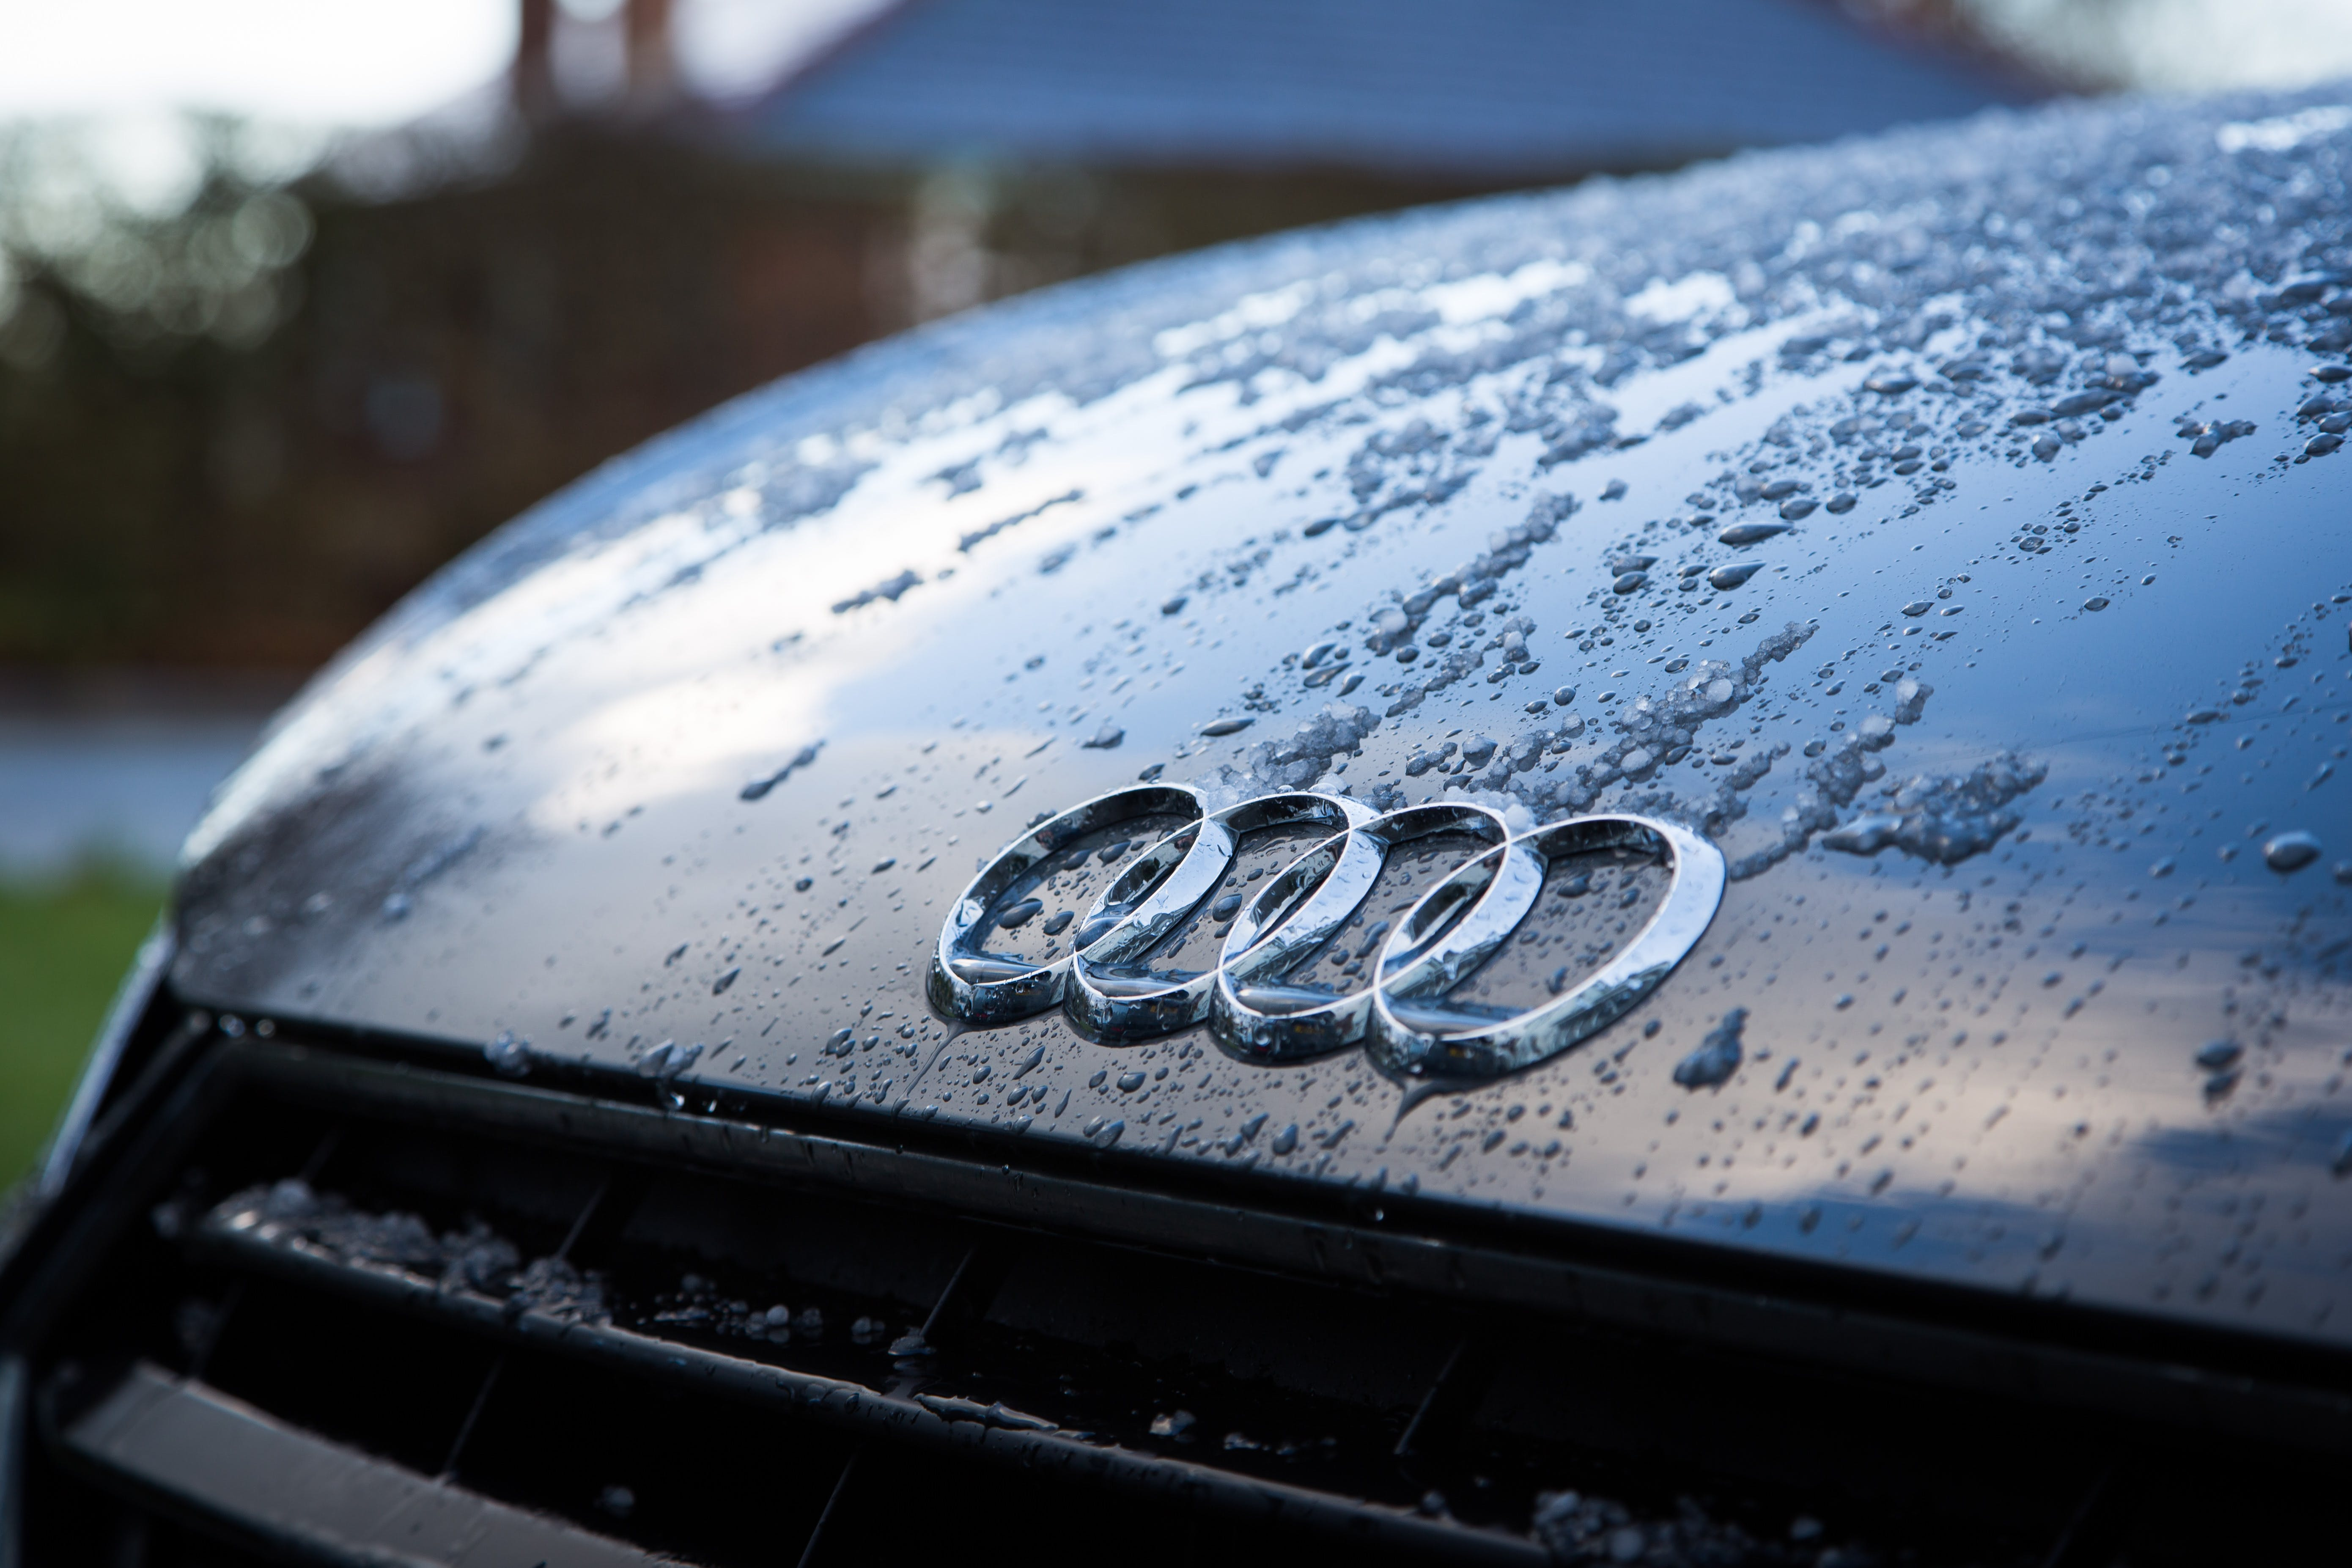 Water Droplets On Black Audi Vehicle Hood